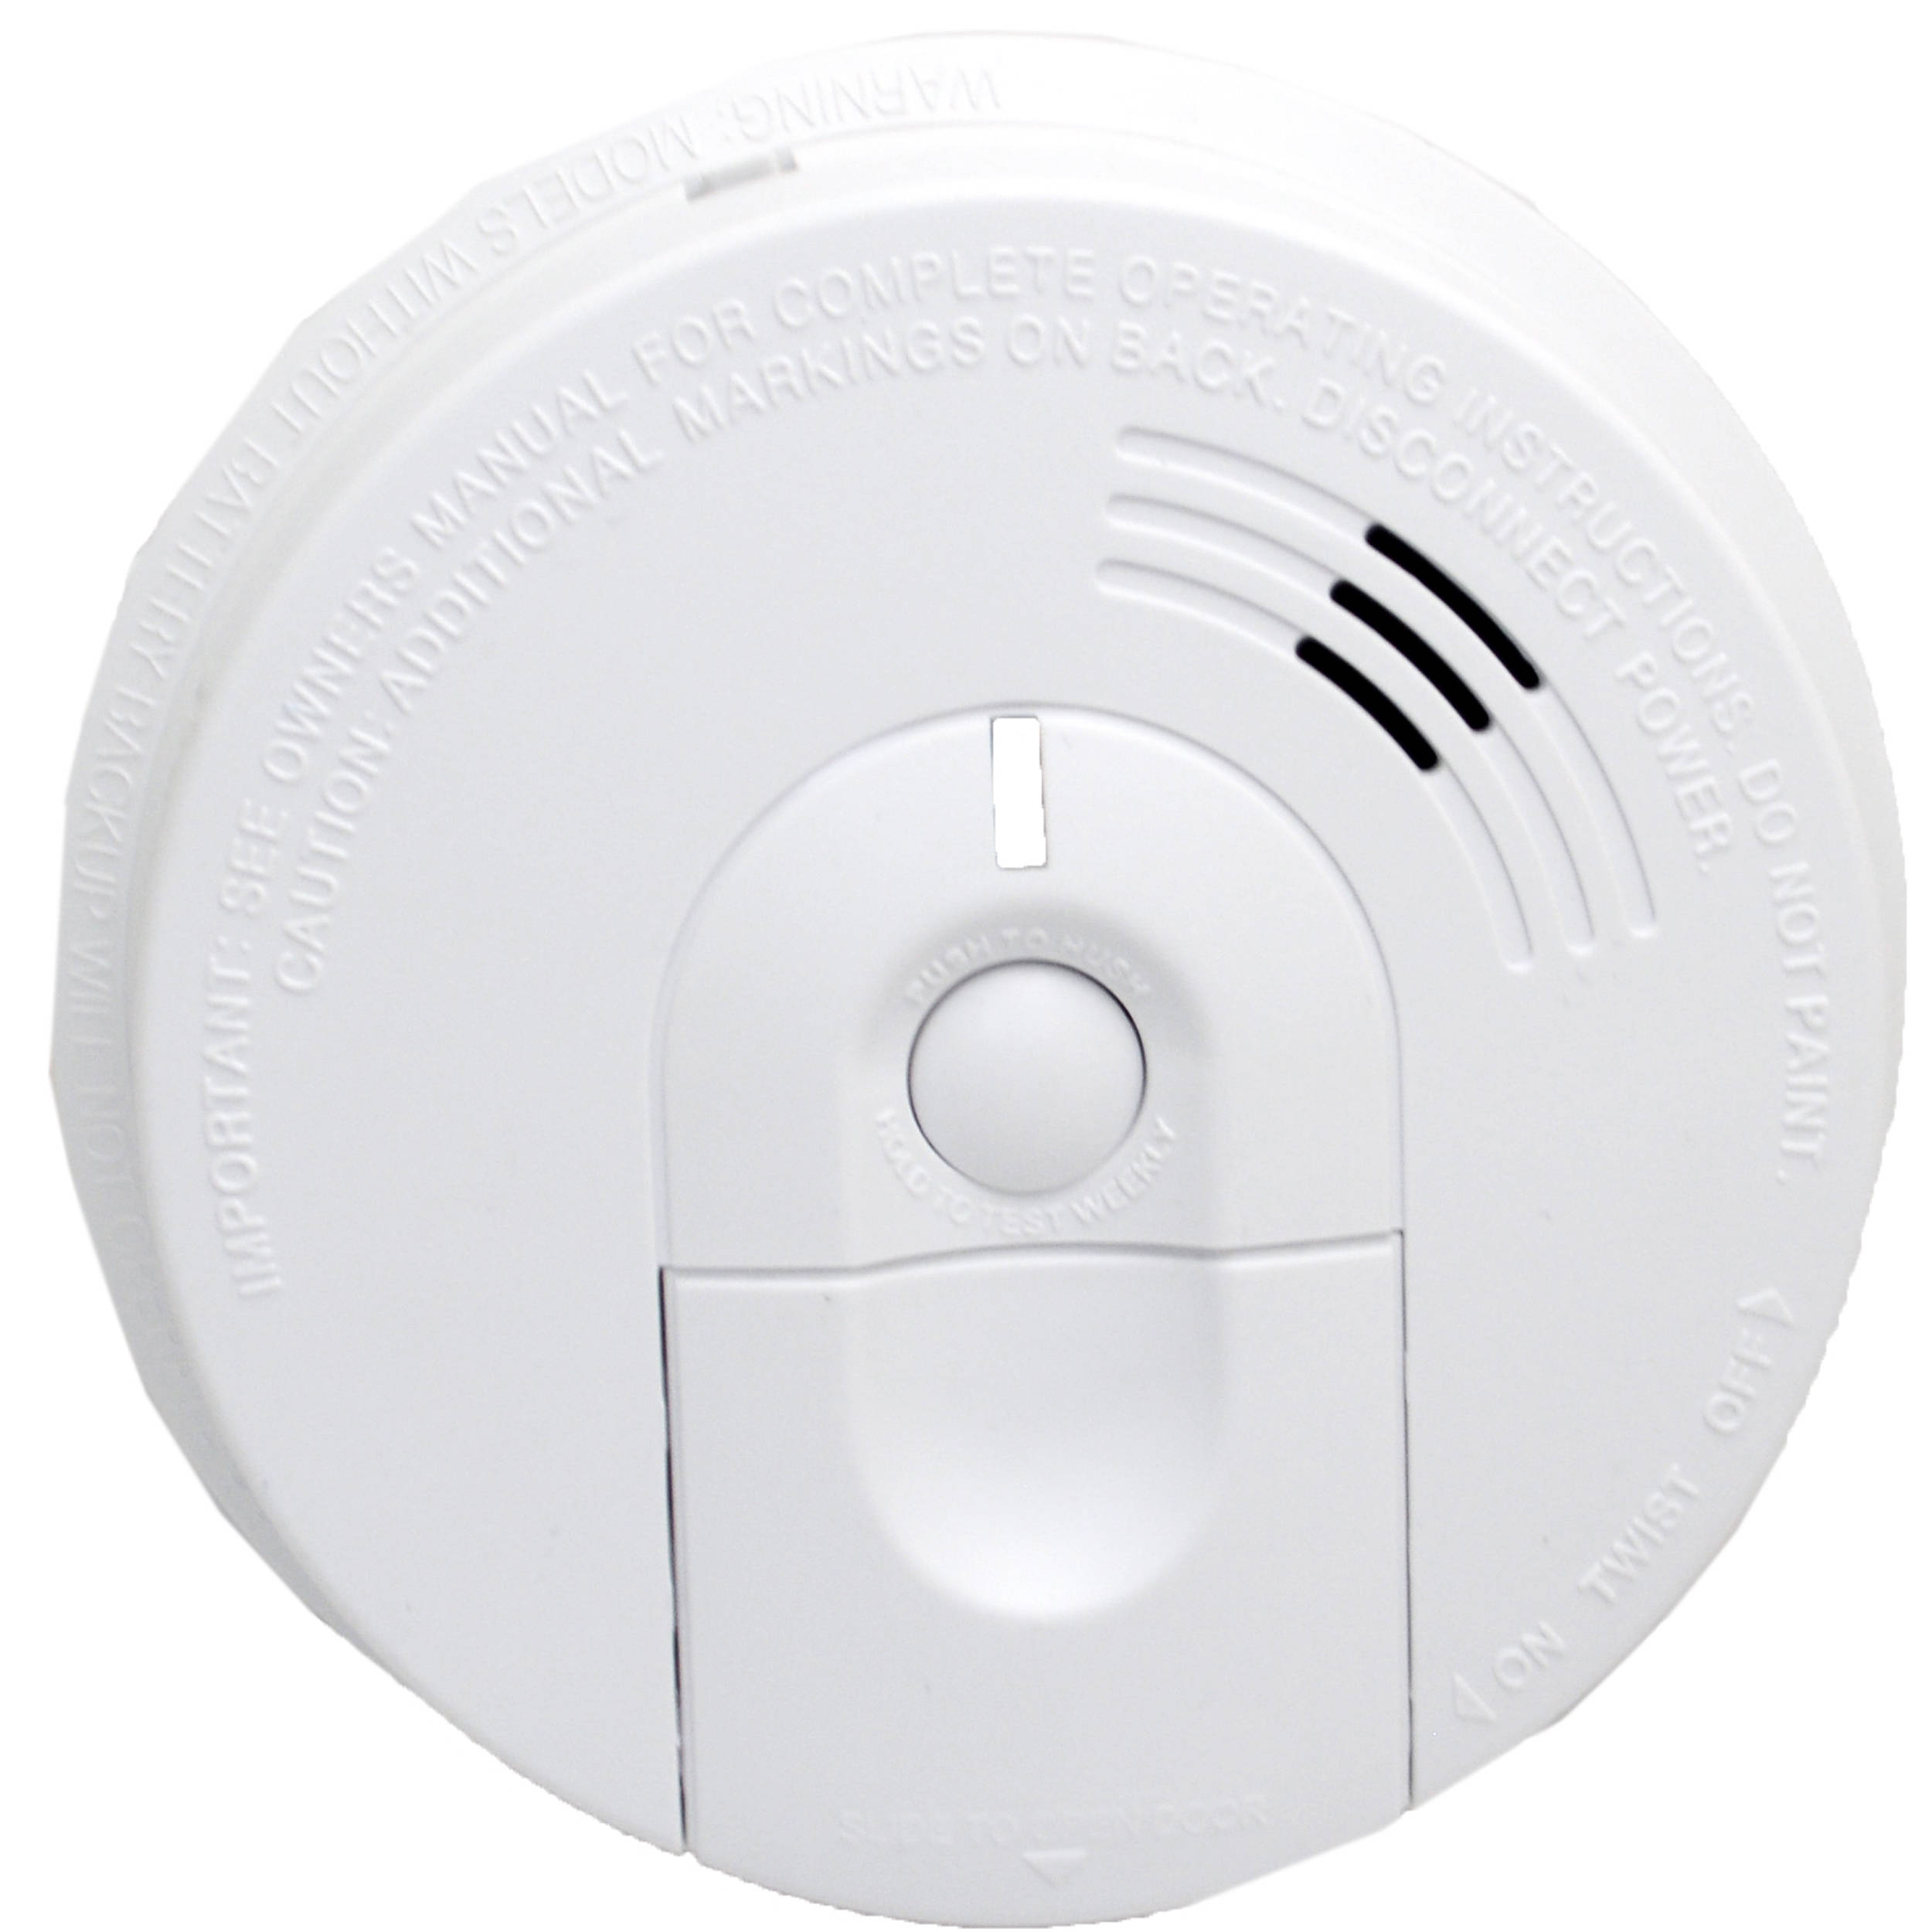 Bush Baby Stealth Hd Wi Fi Hardwired Smoke Detector